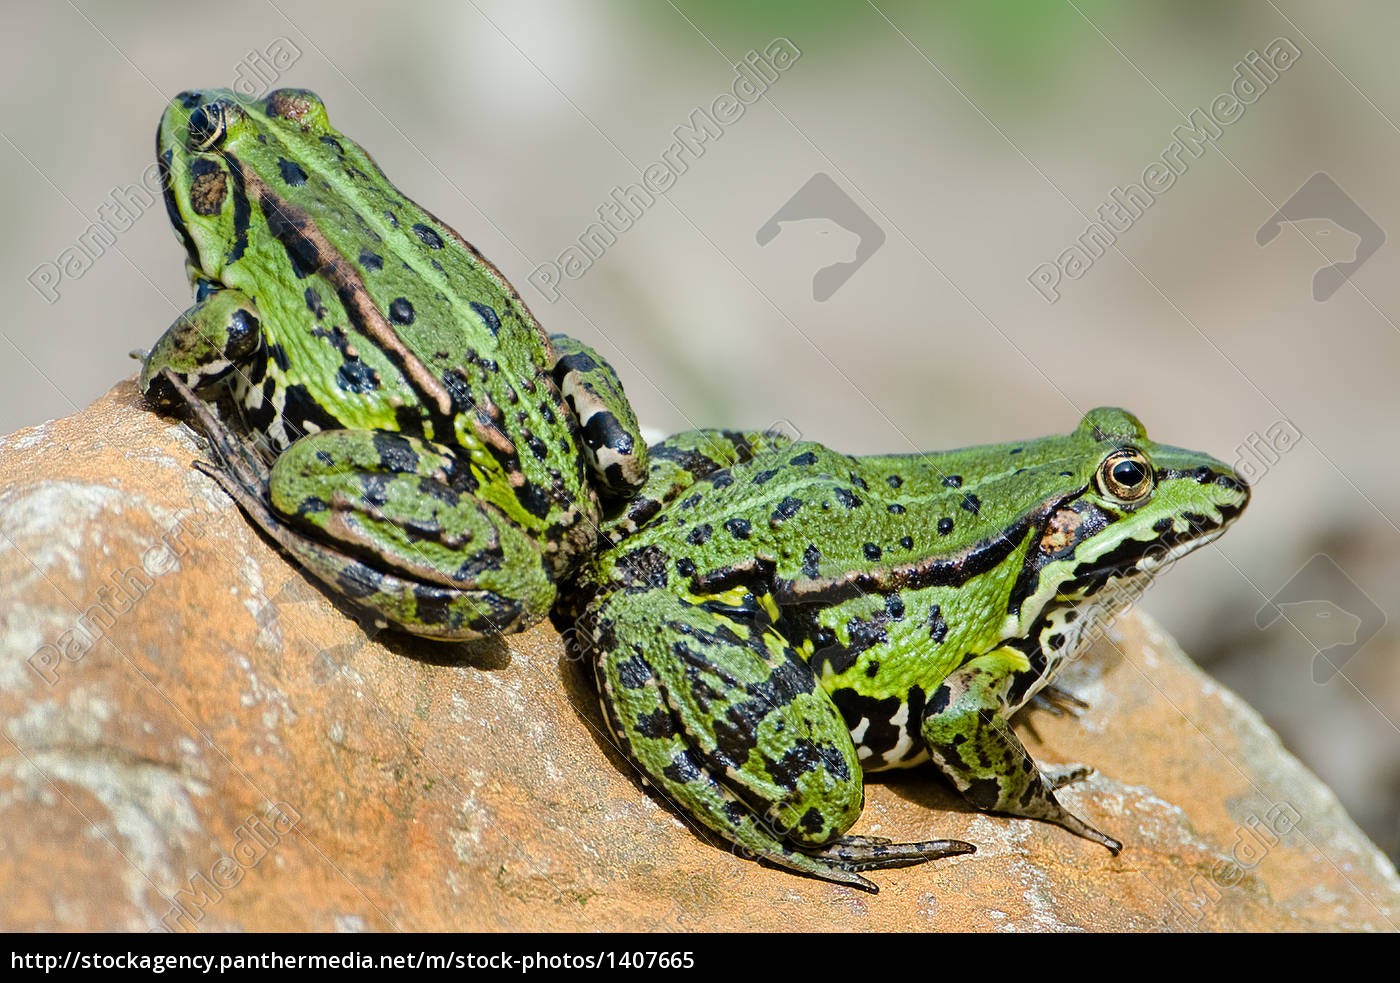 water, frogs - 1407665